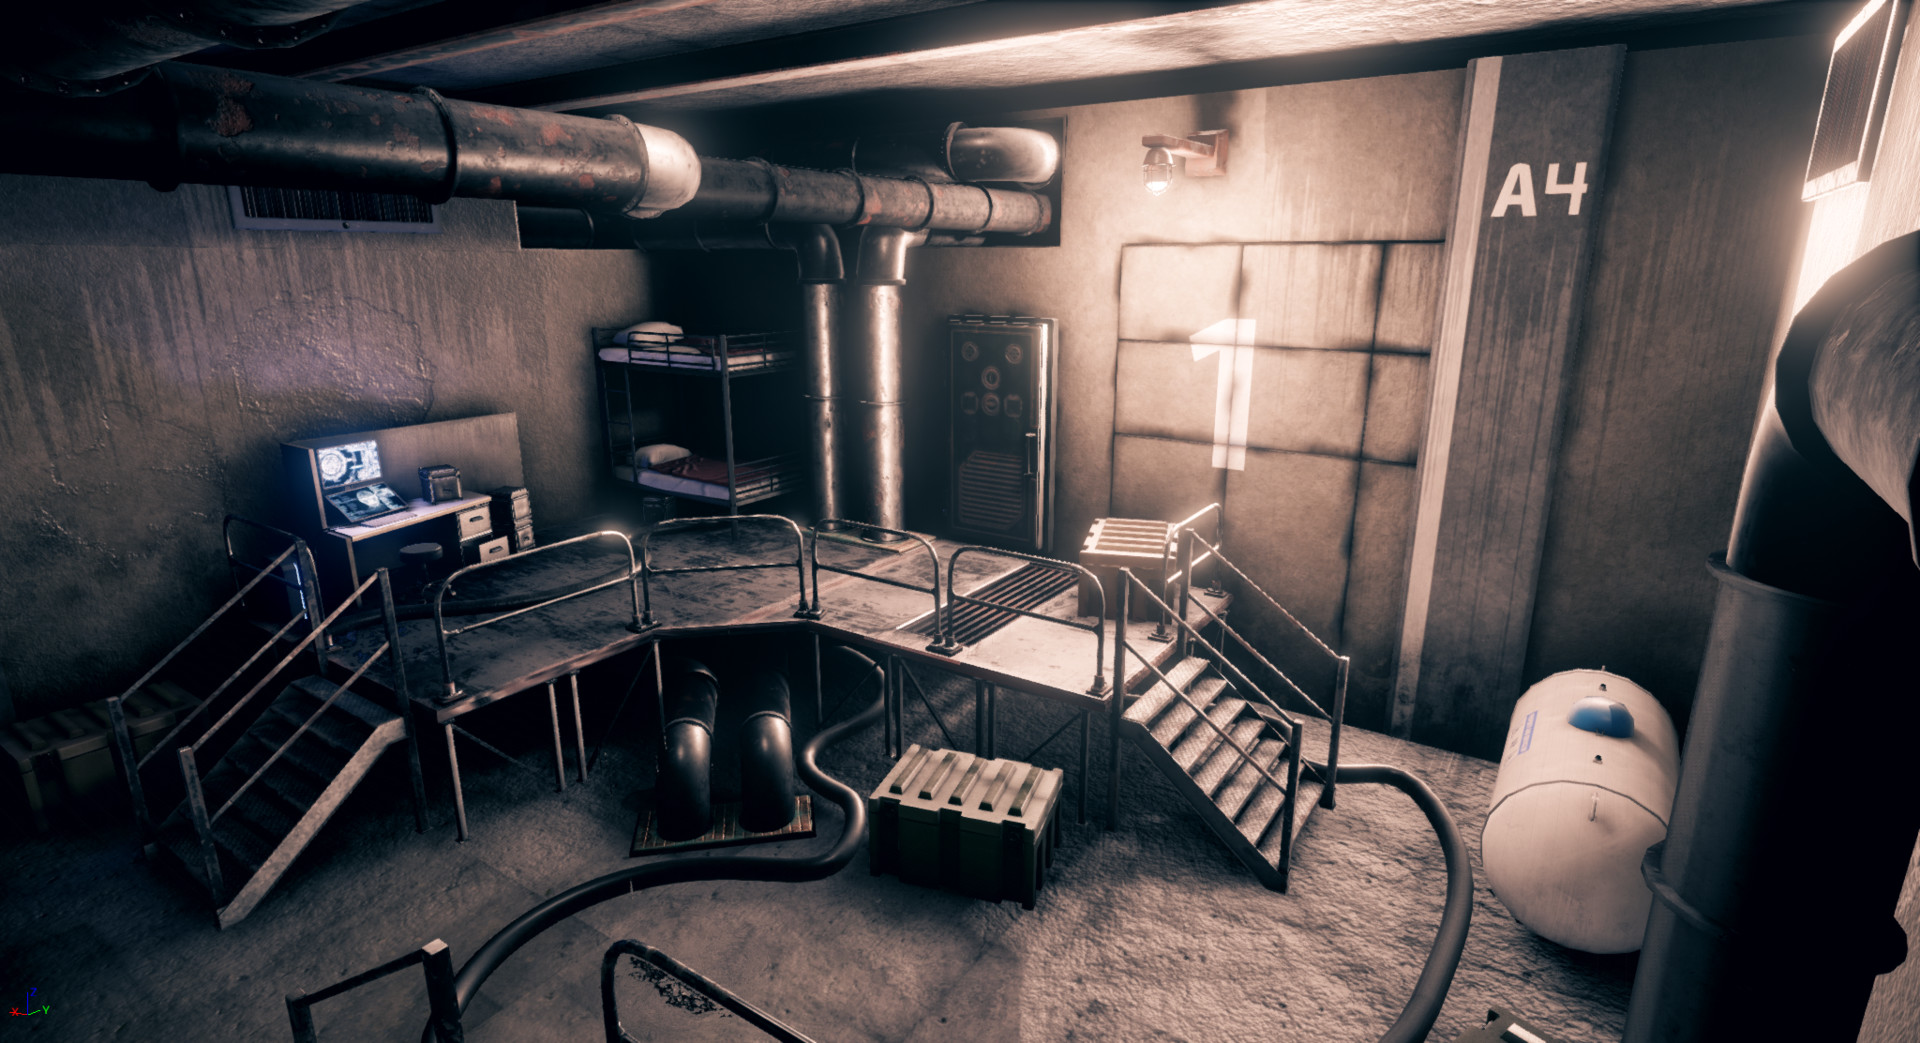 Unreal Engine 4 Bunker environment